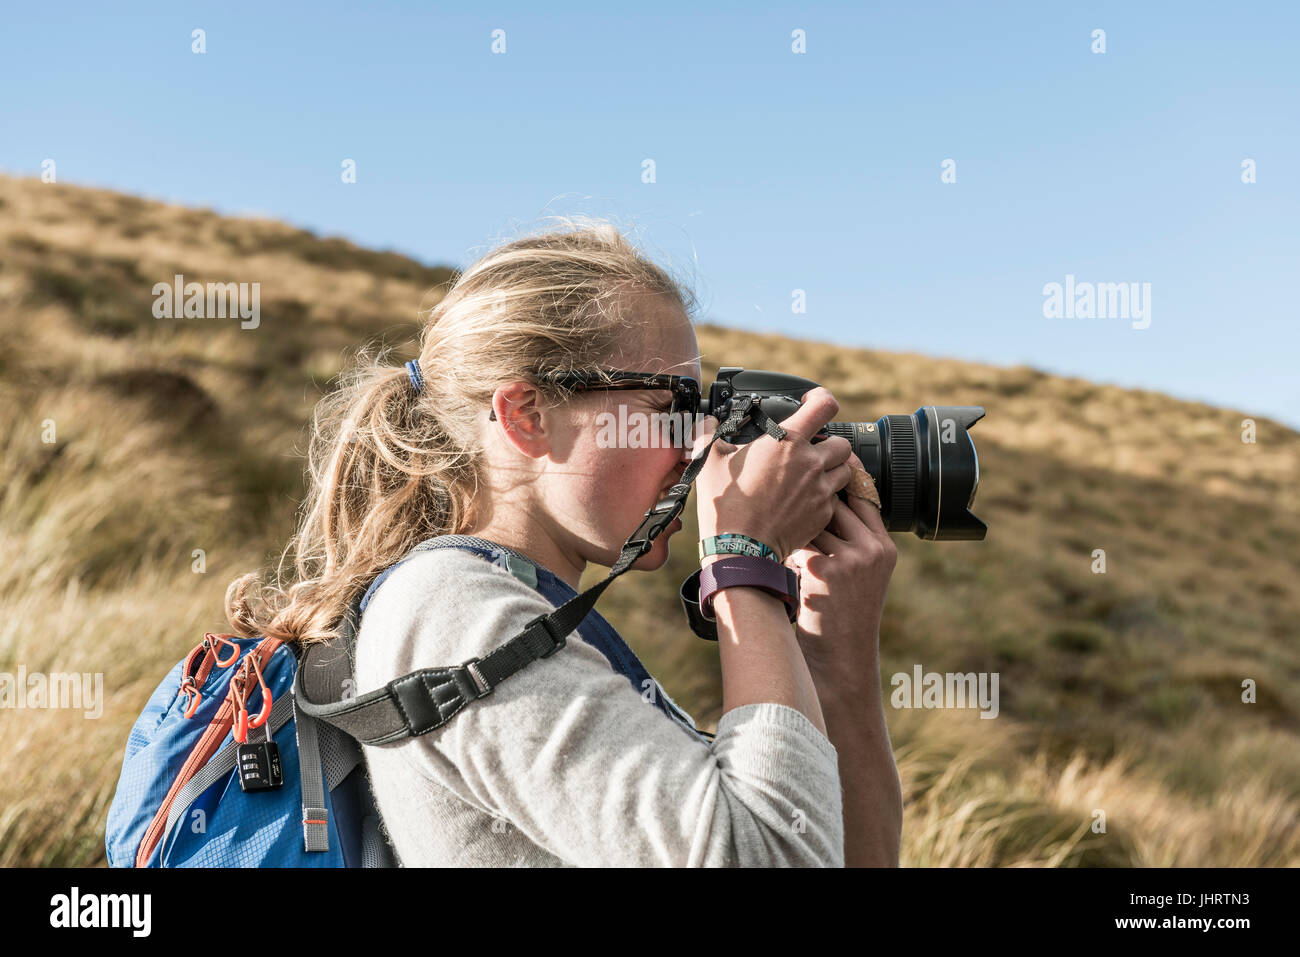 Female hiker taking picture with a reflex camera, Otago, South Island, New Zealand - Stock Image